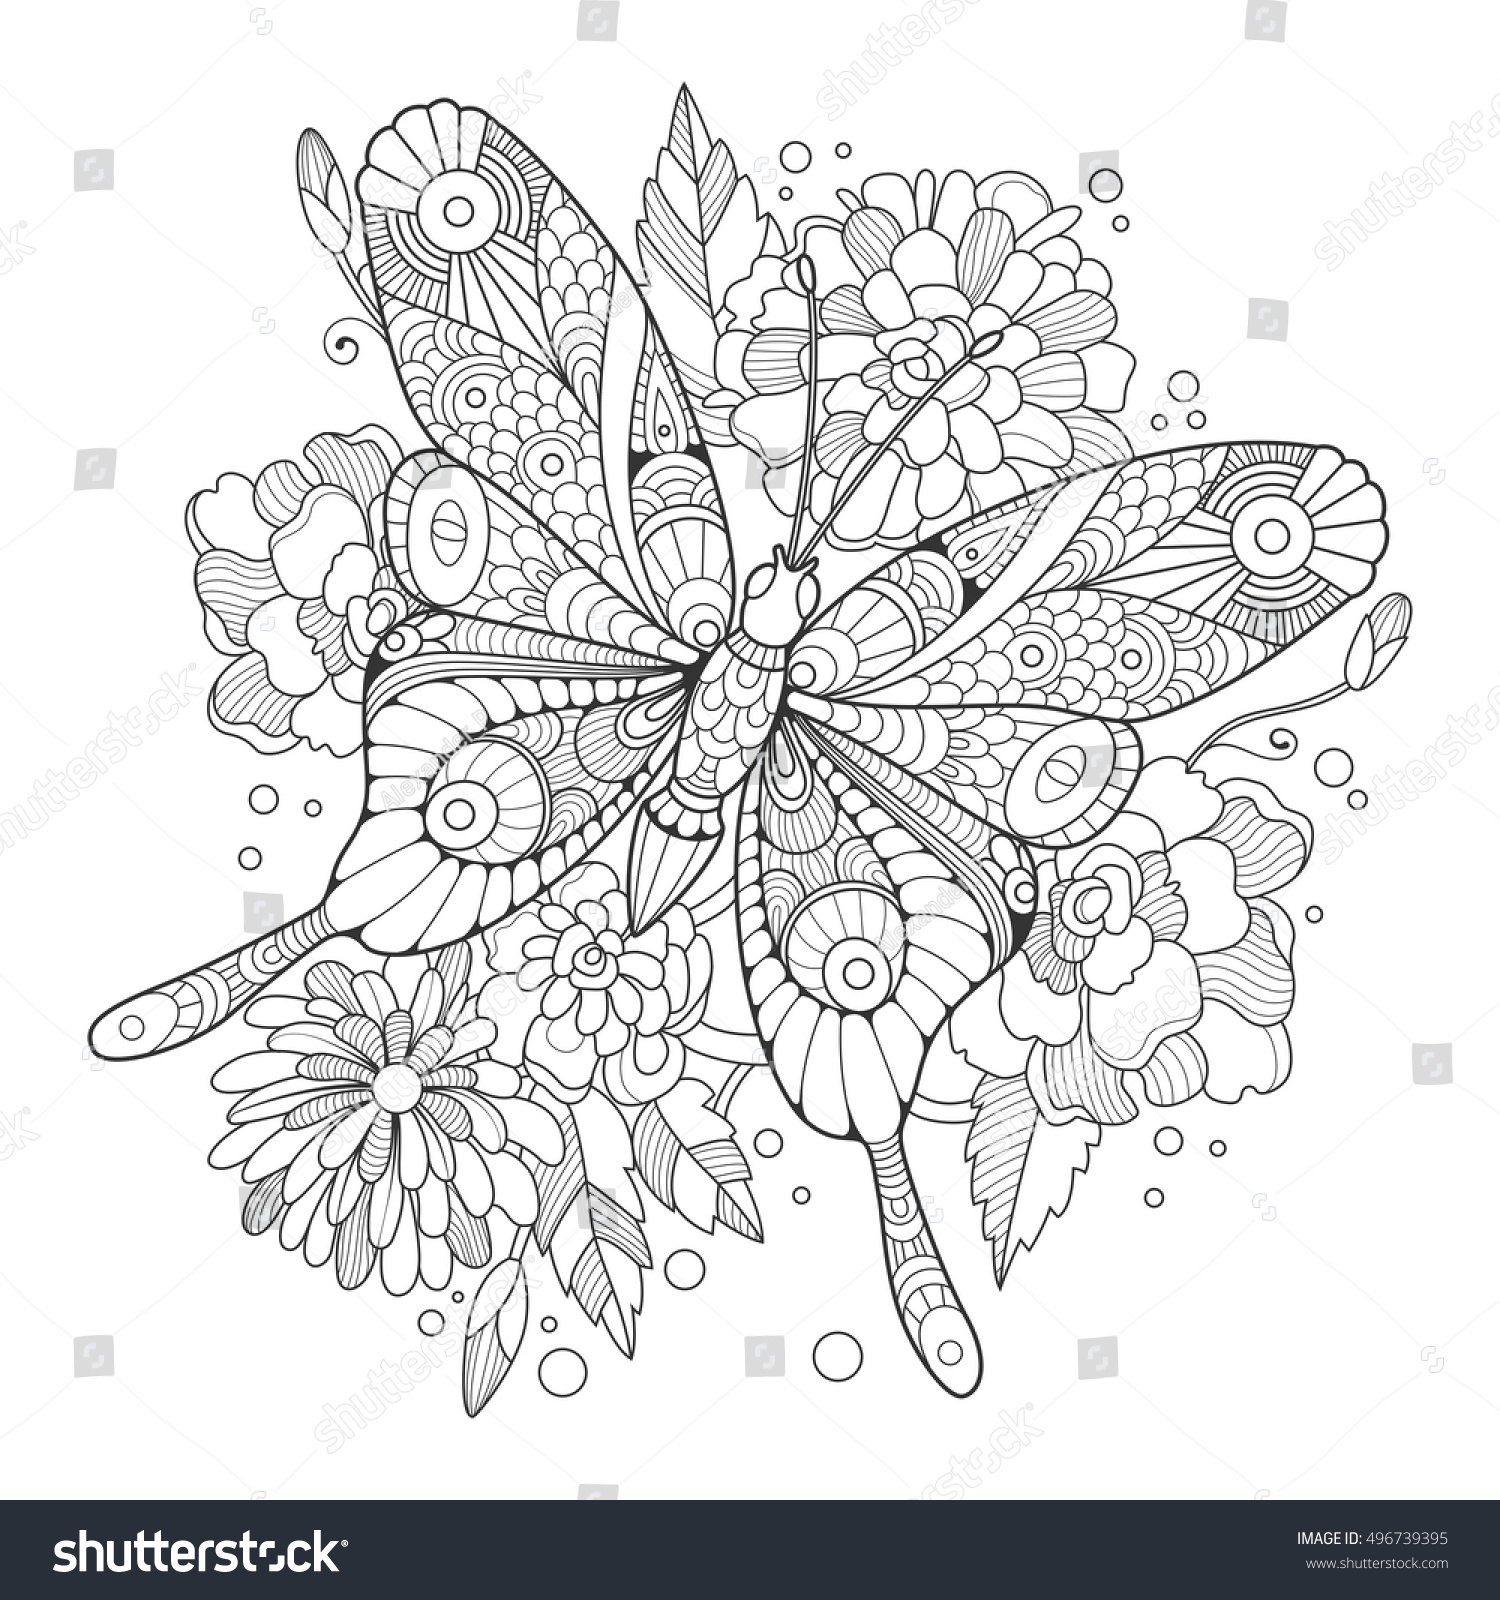 Butterfly Coloring Book For Adults Vector Illustration Anti Stress Adult Tattoo